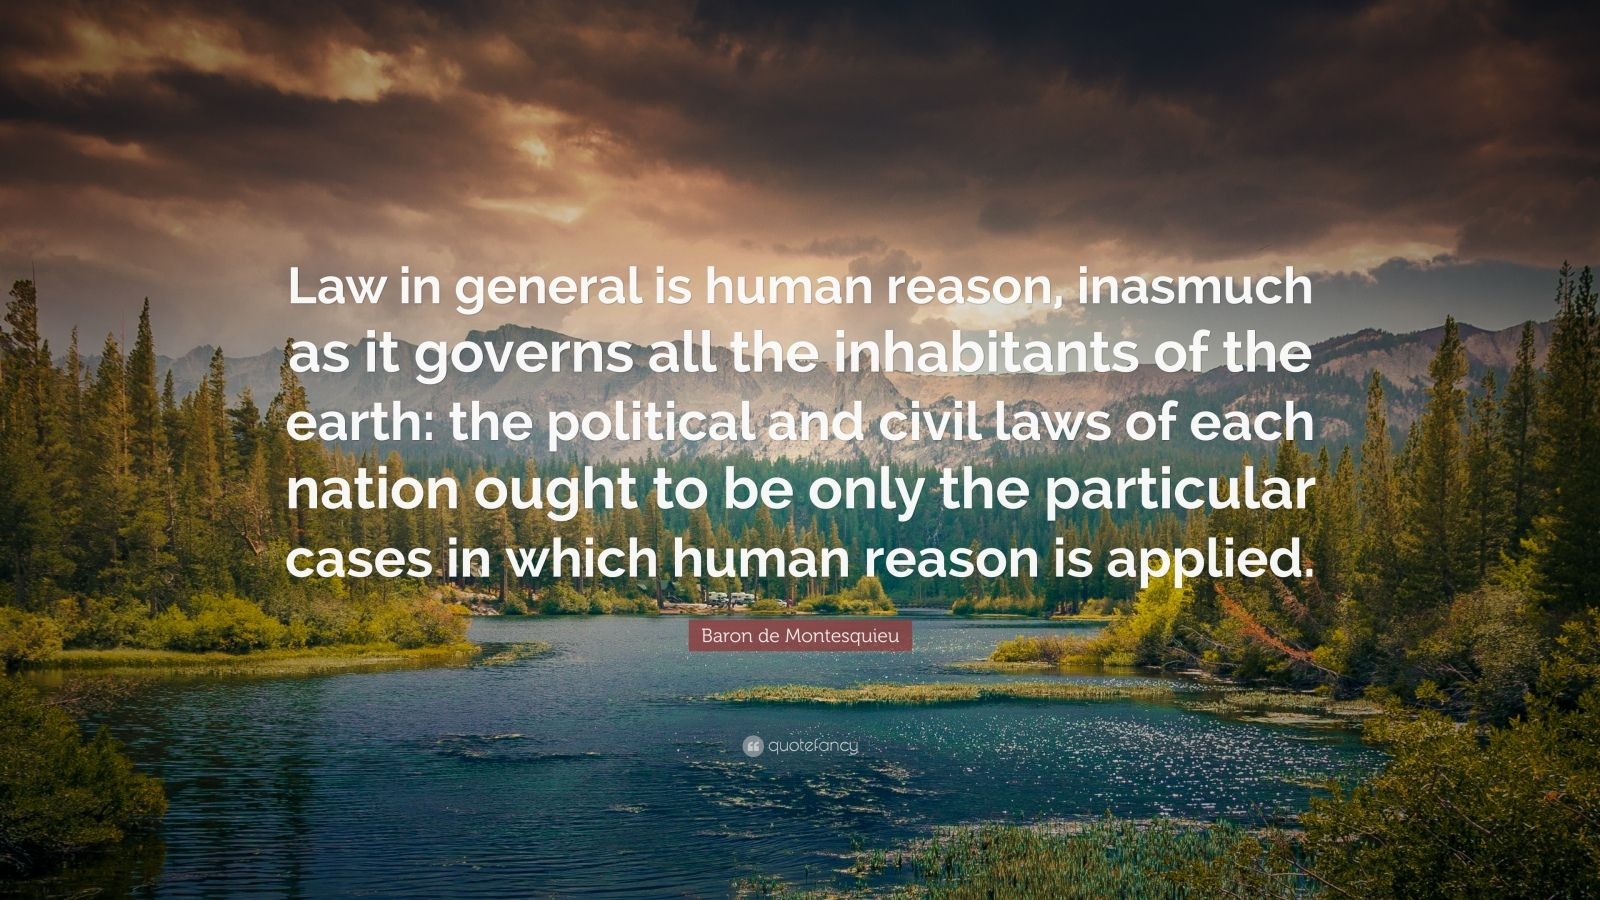 nature of human being and reason for beingg Nature of human being and reason for beingg essay reflection paper on the nature of human being & reason for being nature of human being : how one does defines human nature  a lot has been said about how we evolved as humans and where we came from.